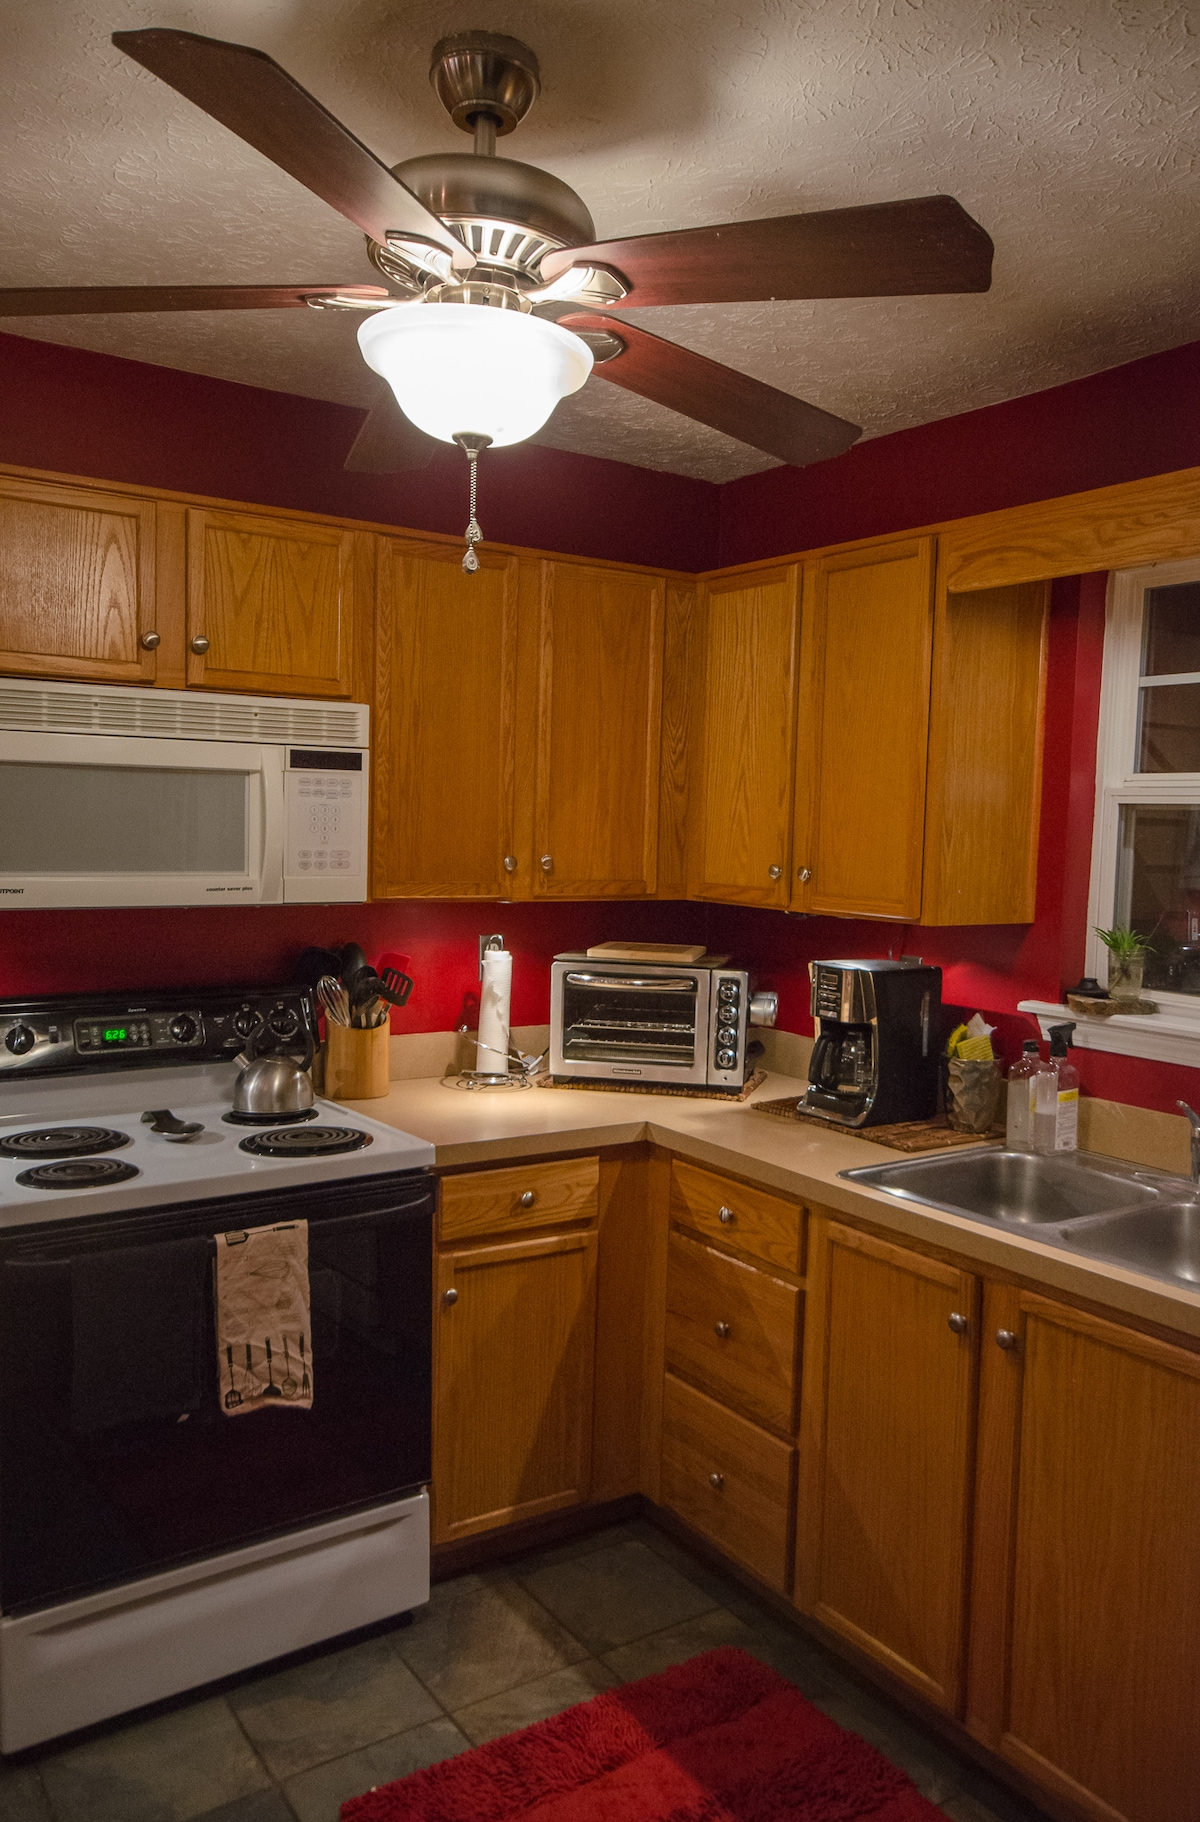 The Kitchen is stocked with all the appliances one would need.  Blenders, choppers, coffee maker and more!